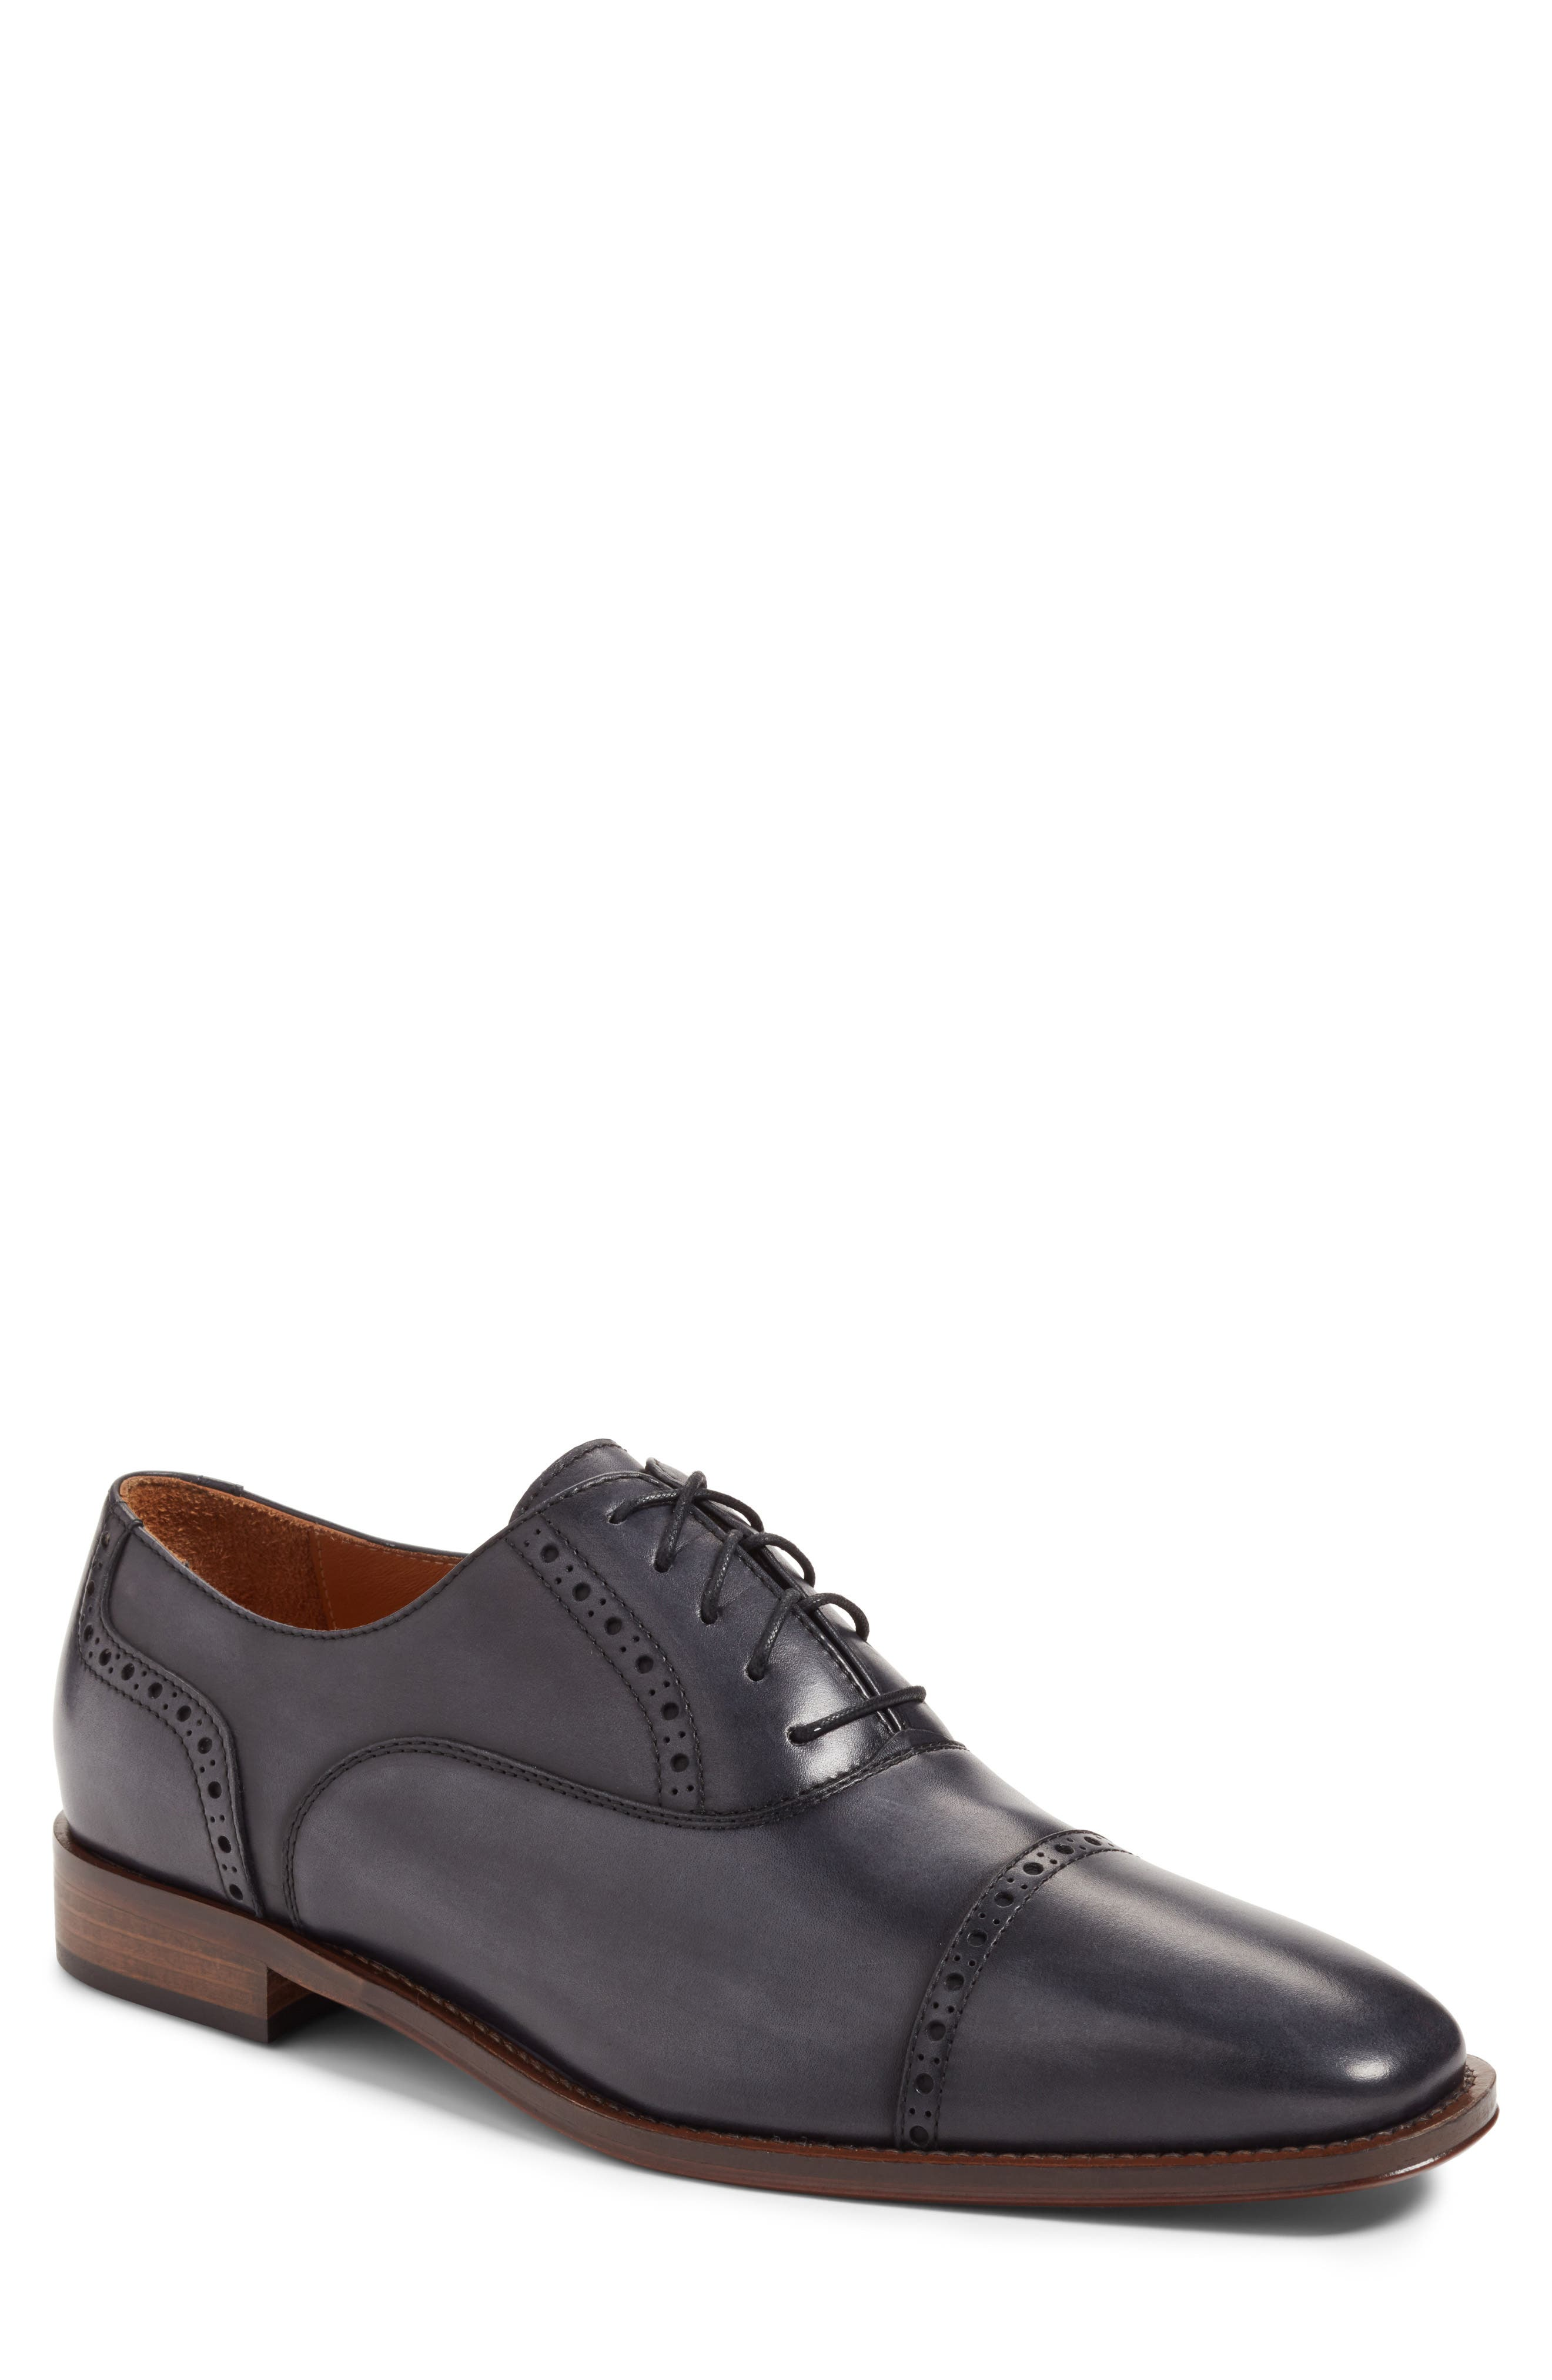 Vicente Cap toe Loafer,                         Main,                         color, 021